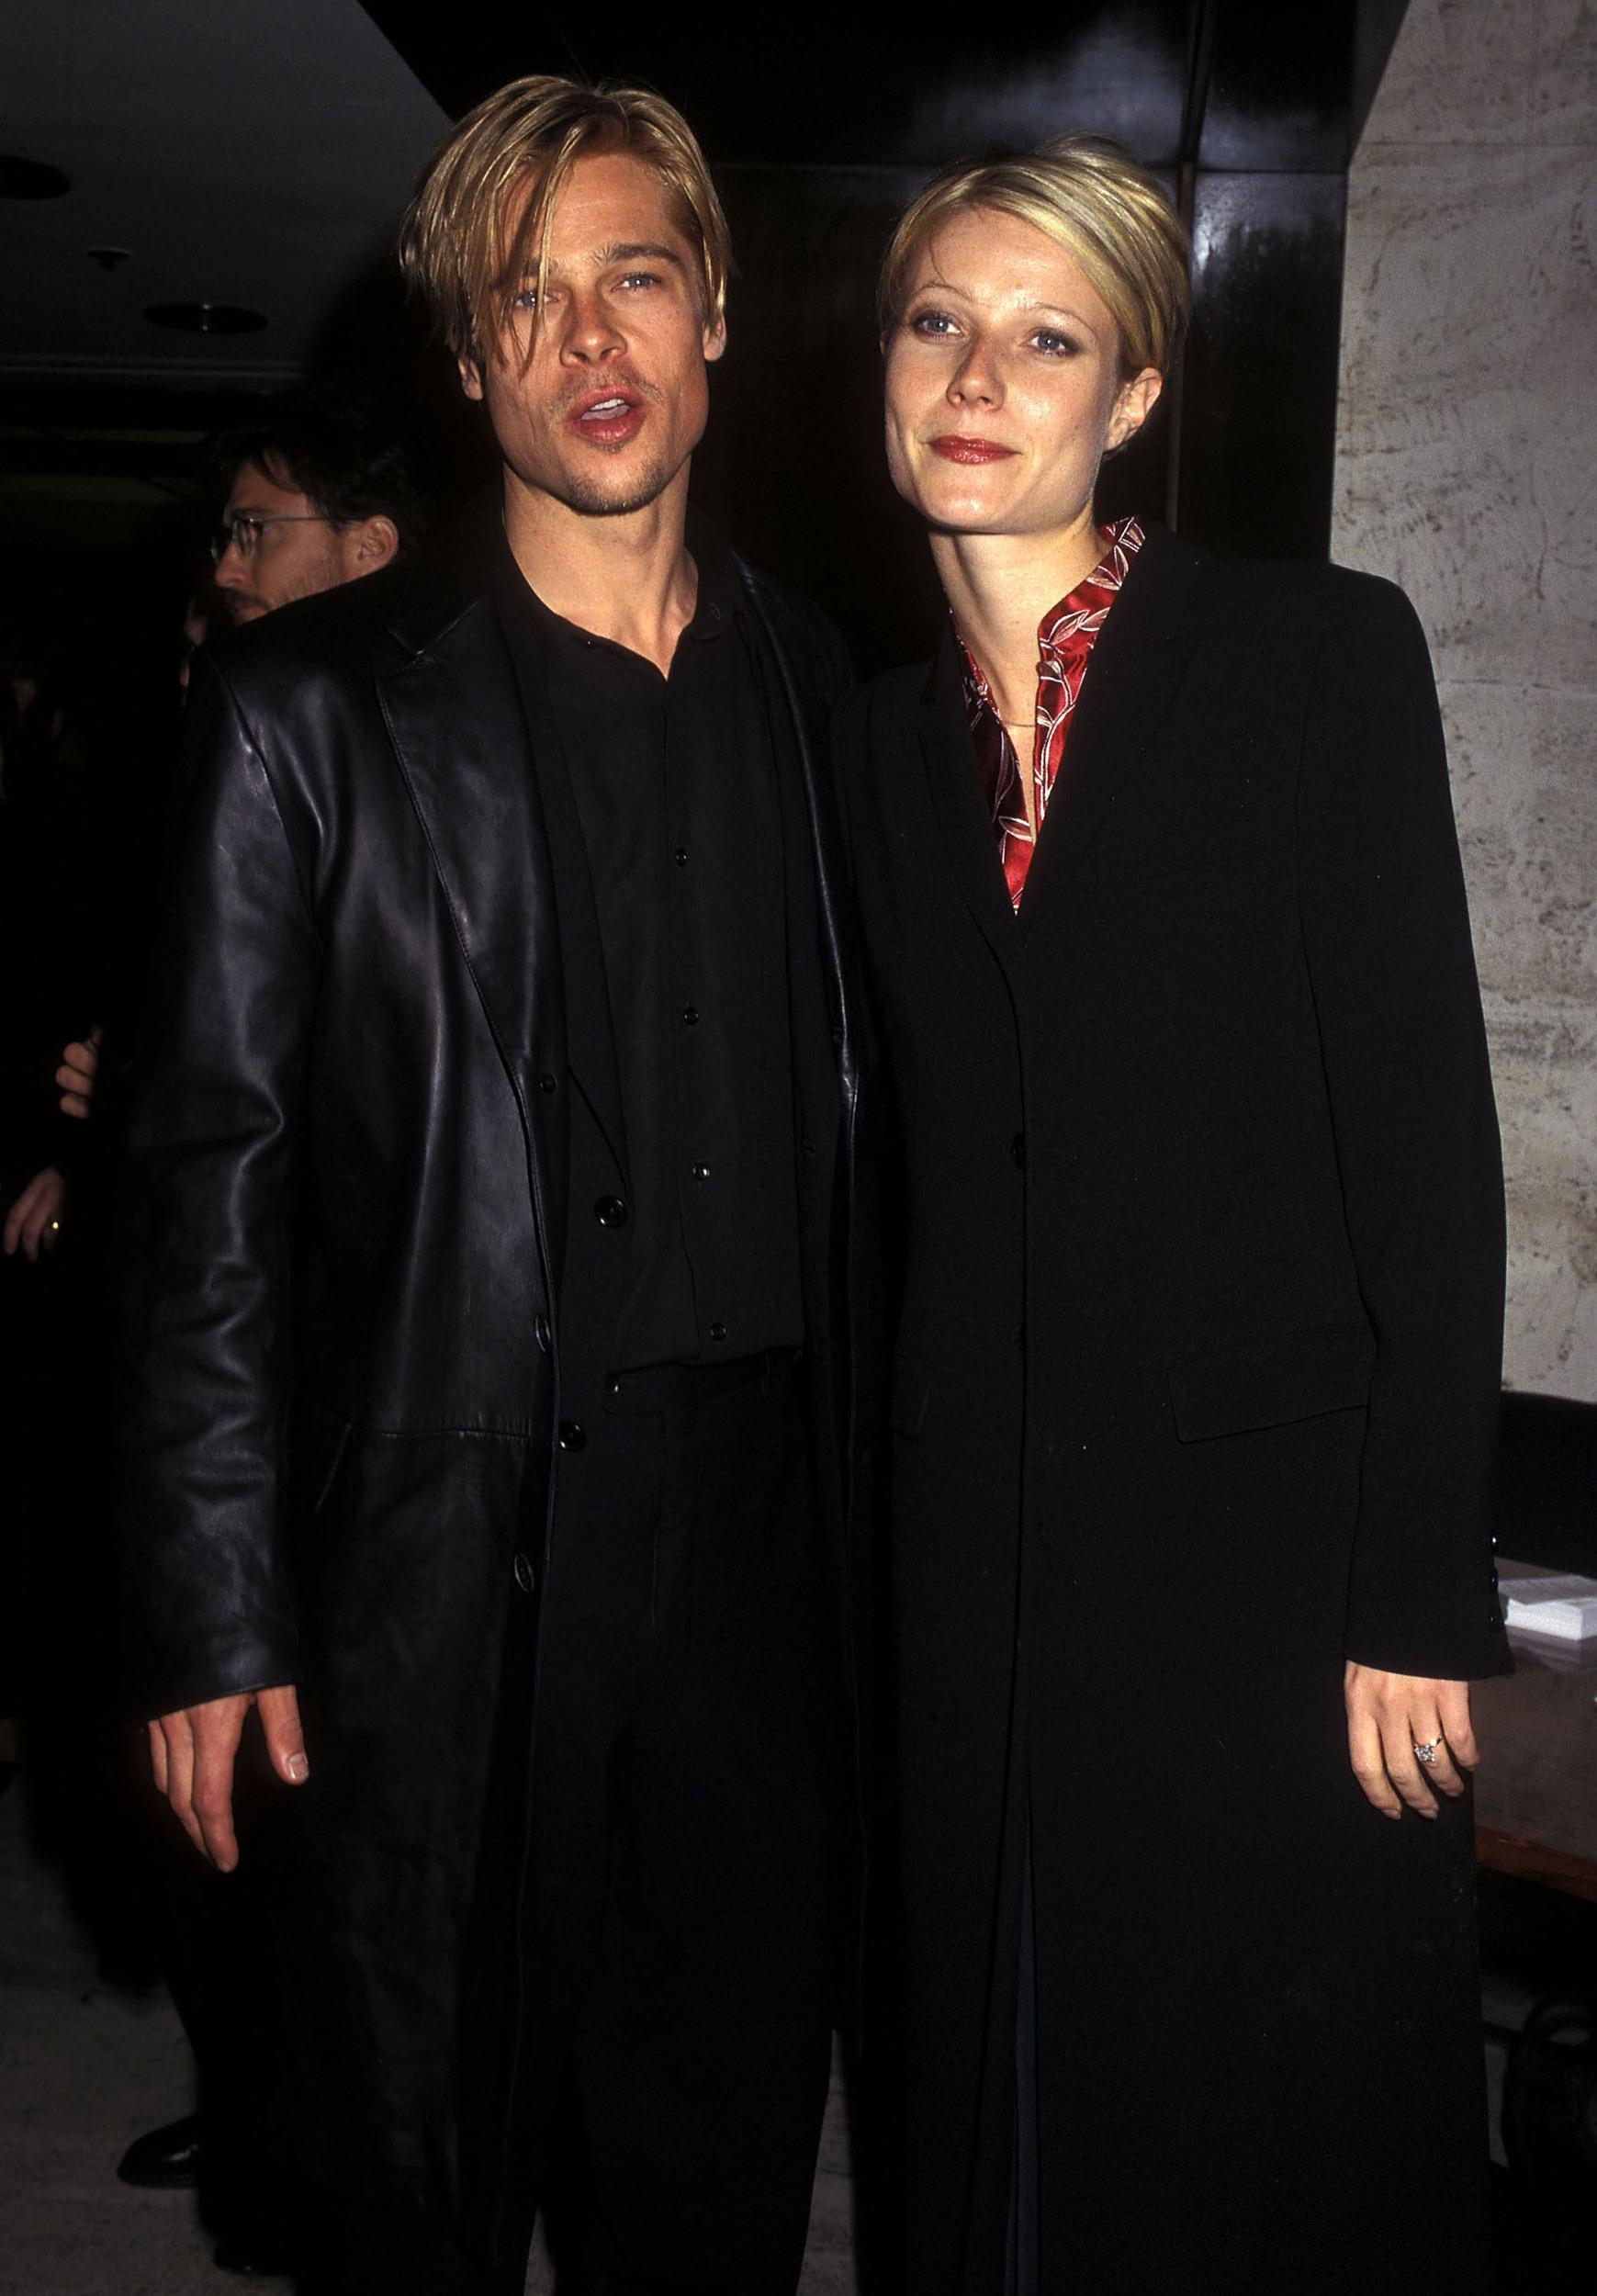 Actor Brad Pitt and actress Gwyneth Paltrow attend 'The Devil's Own' New York City Premiere on March 13, 1997 at City Cinemas Cinema 1 in New York City. (Photo by Ron Galella, Ltd./WireImage)